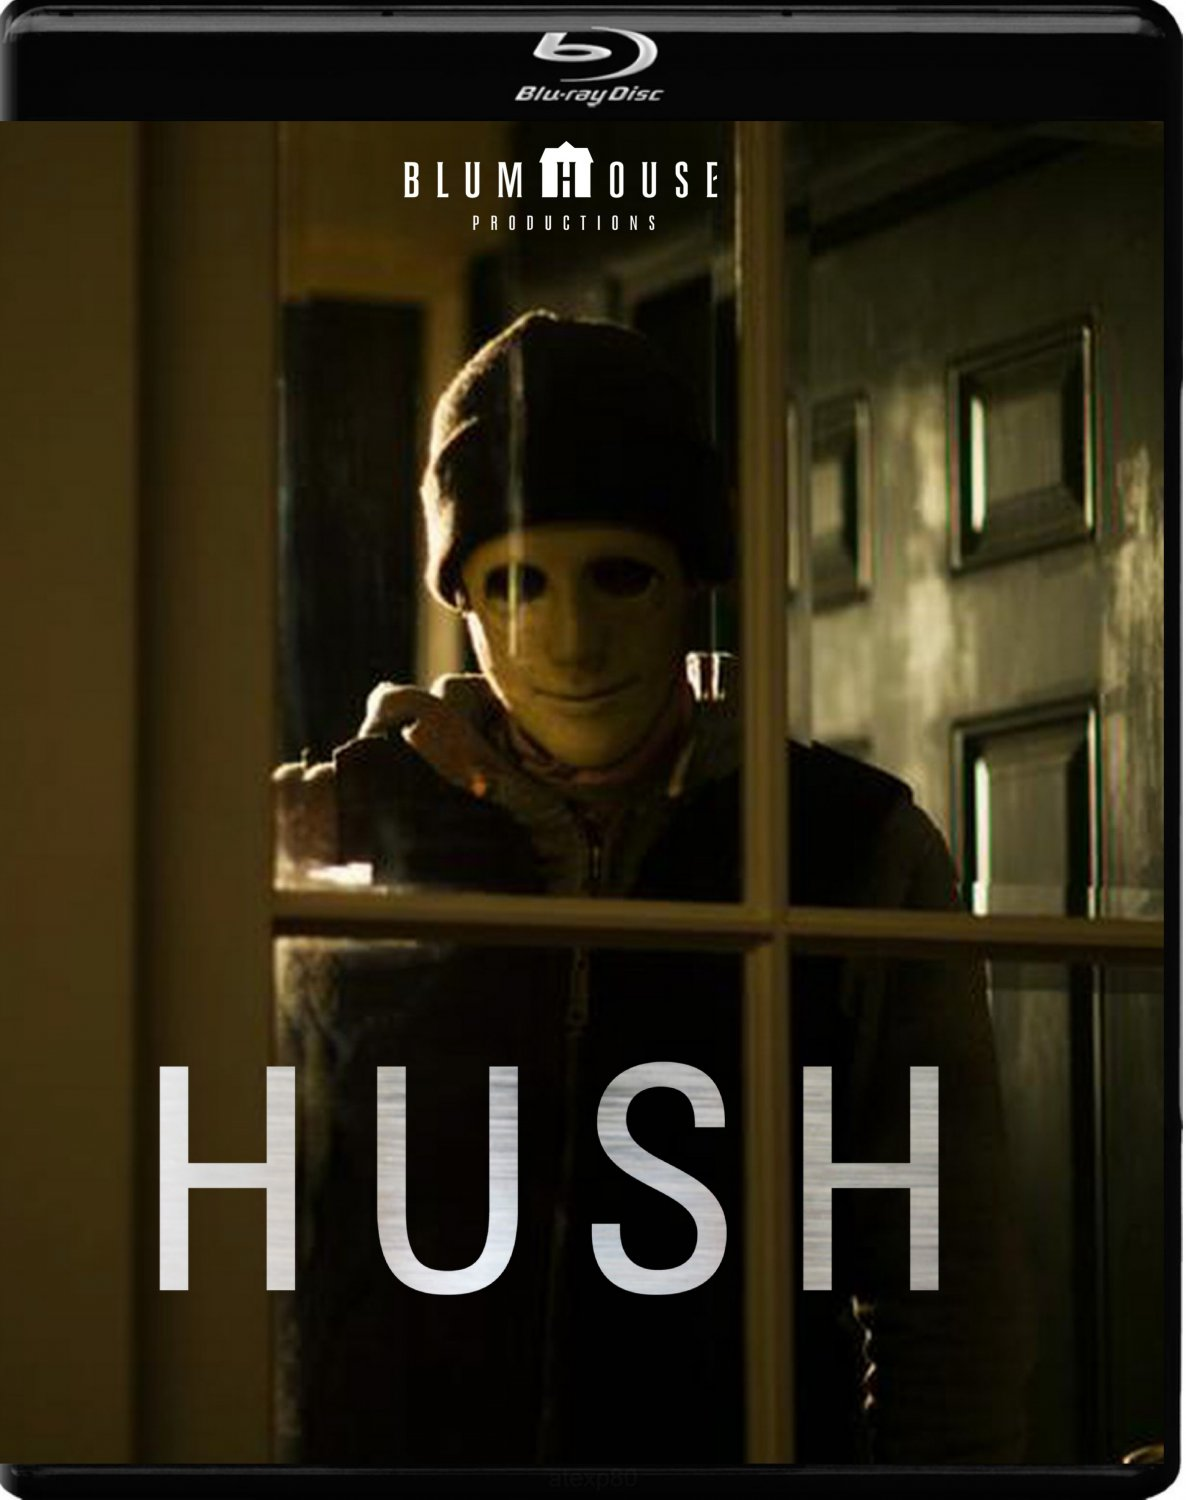 HUSH (2016) [Horror/Thriller] Blu-ray